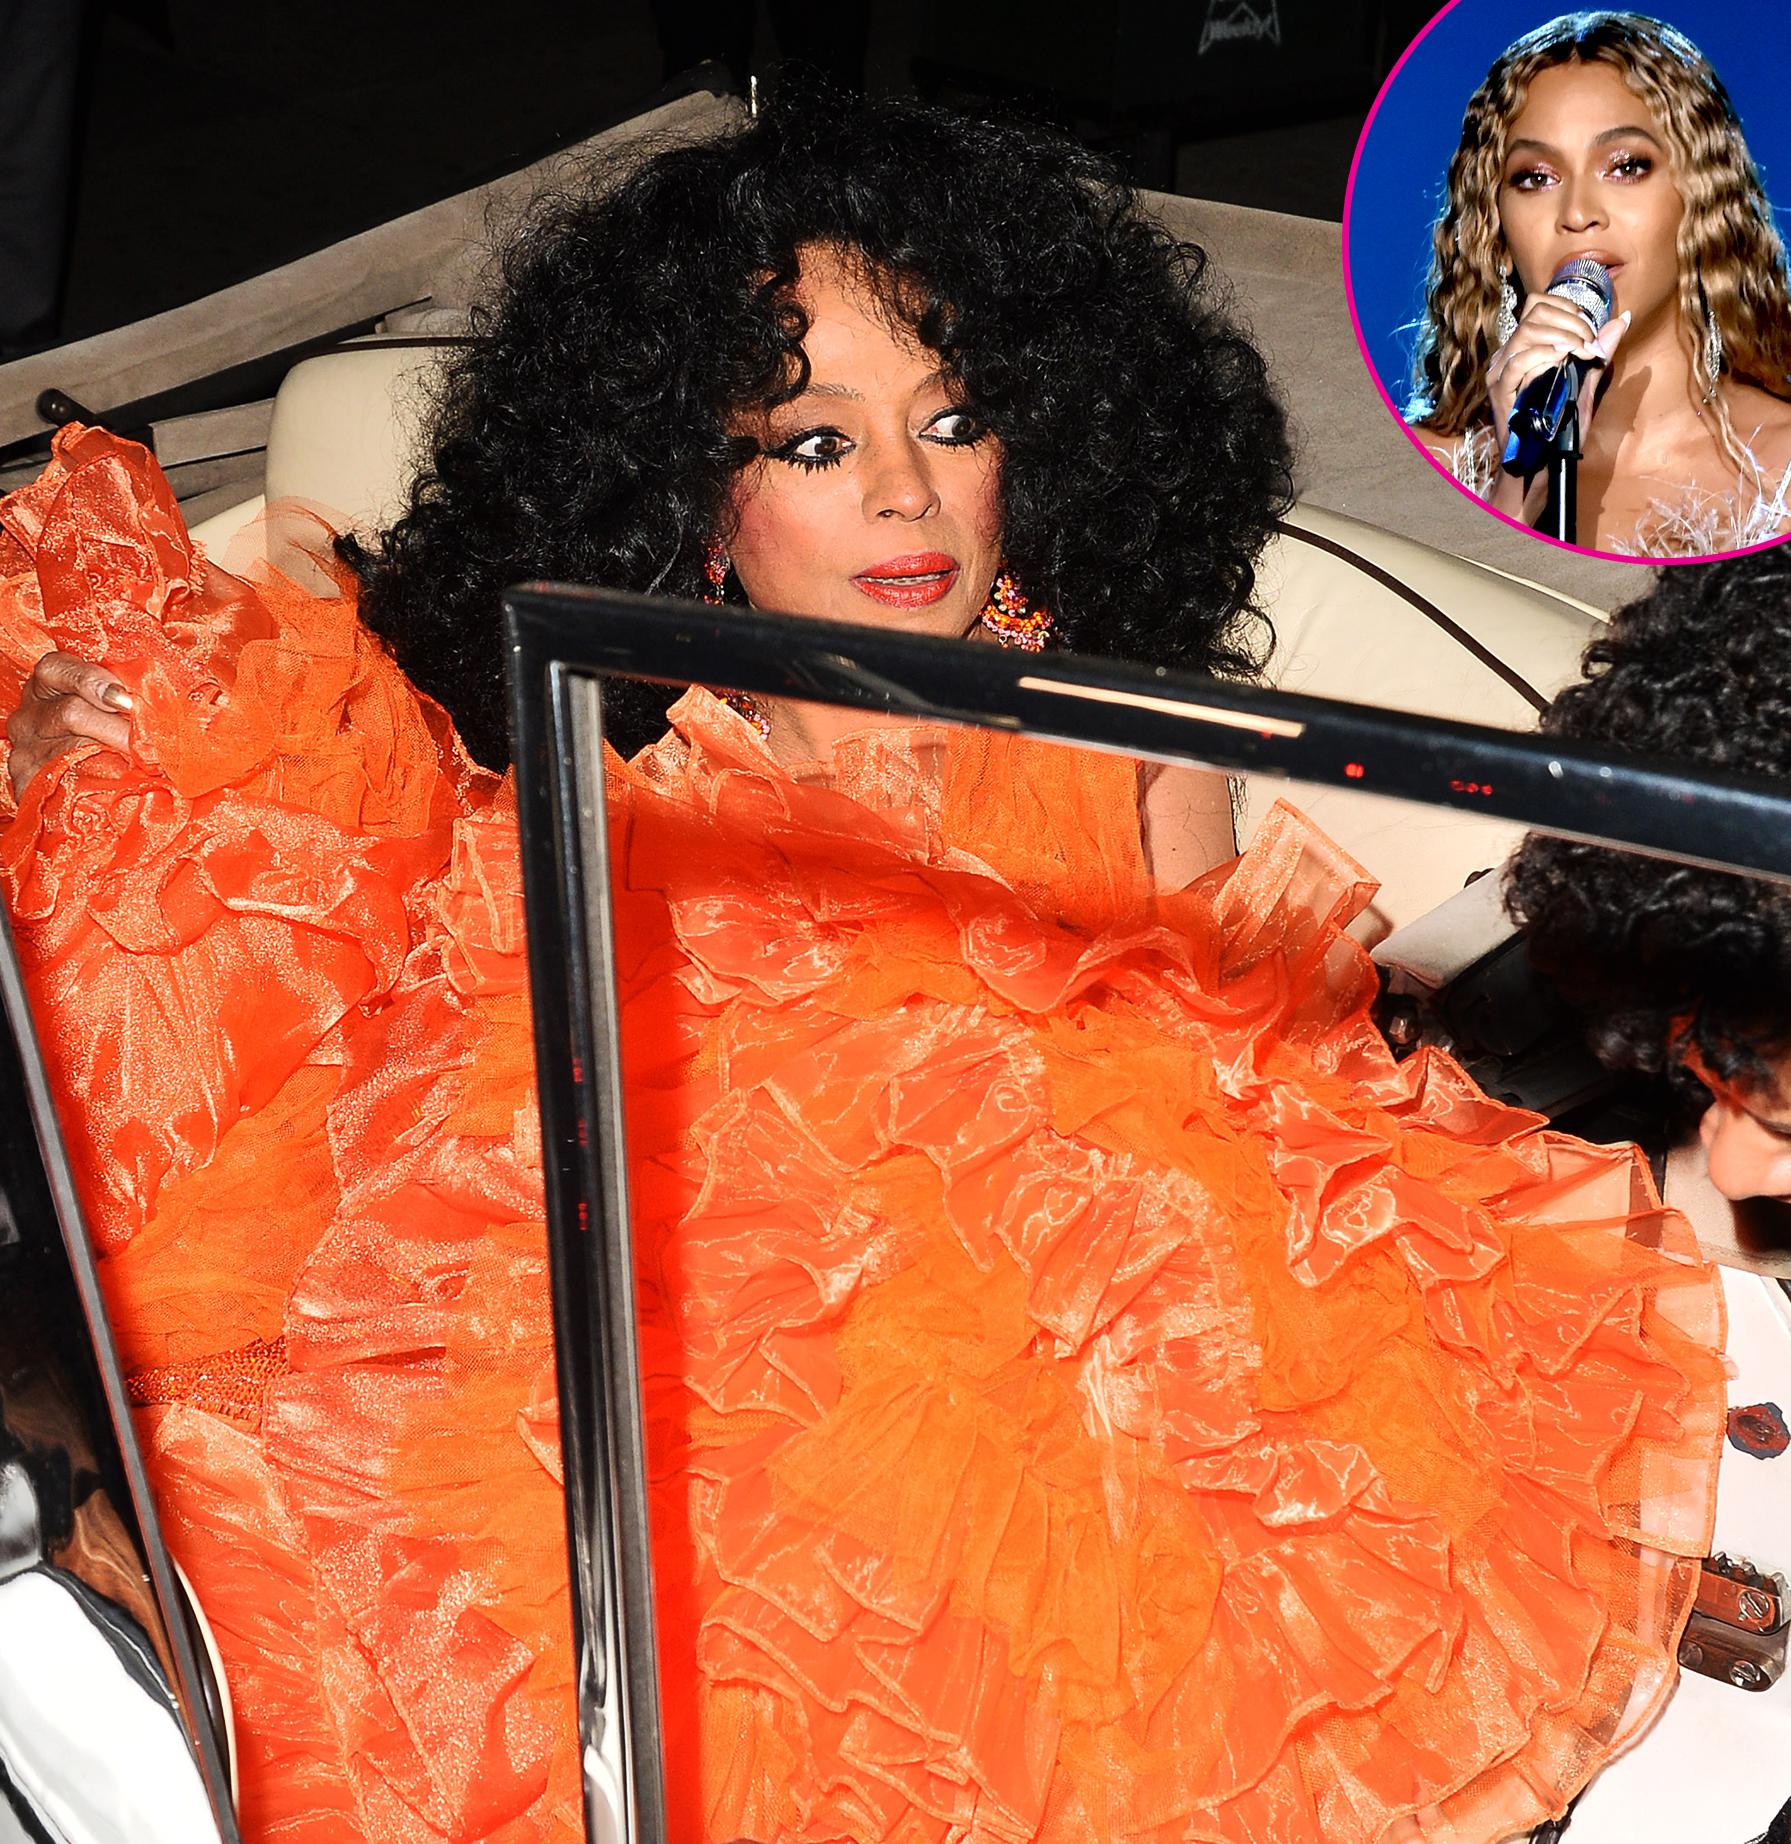 Diana-Ross'-75th-Birthday-Bash--Beyonce-Sang-Happy-Birthday - Khloe Kardashian Dresses as Diana Ross at Her 75th Birthday Party at Warwick. 27 Mar 2019 Pictured: Diana Ross.